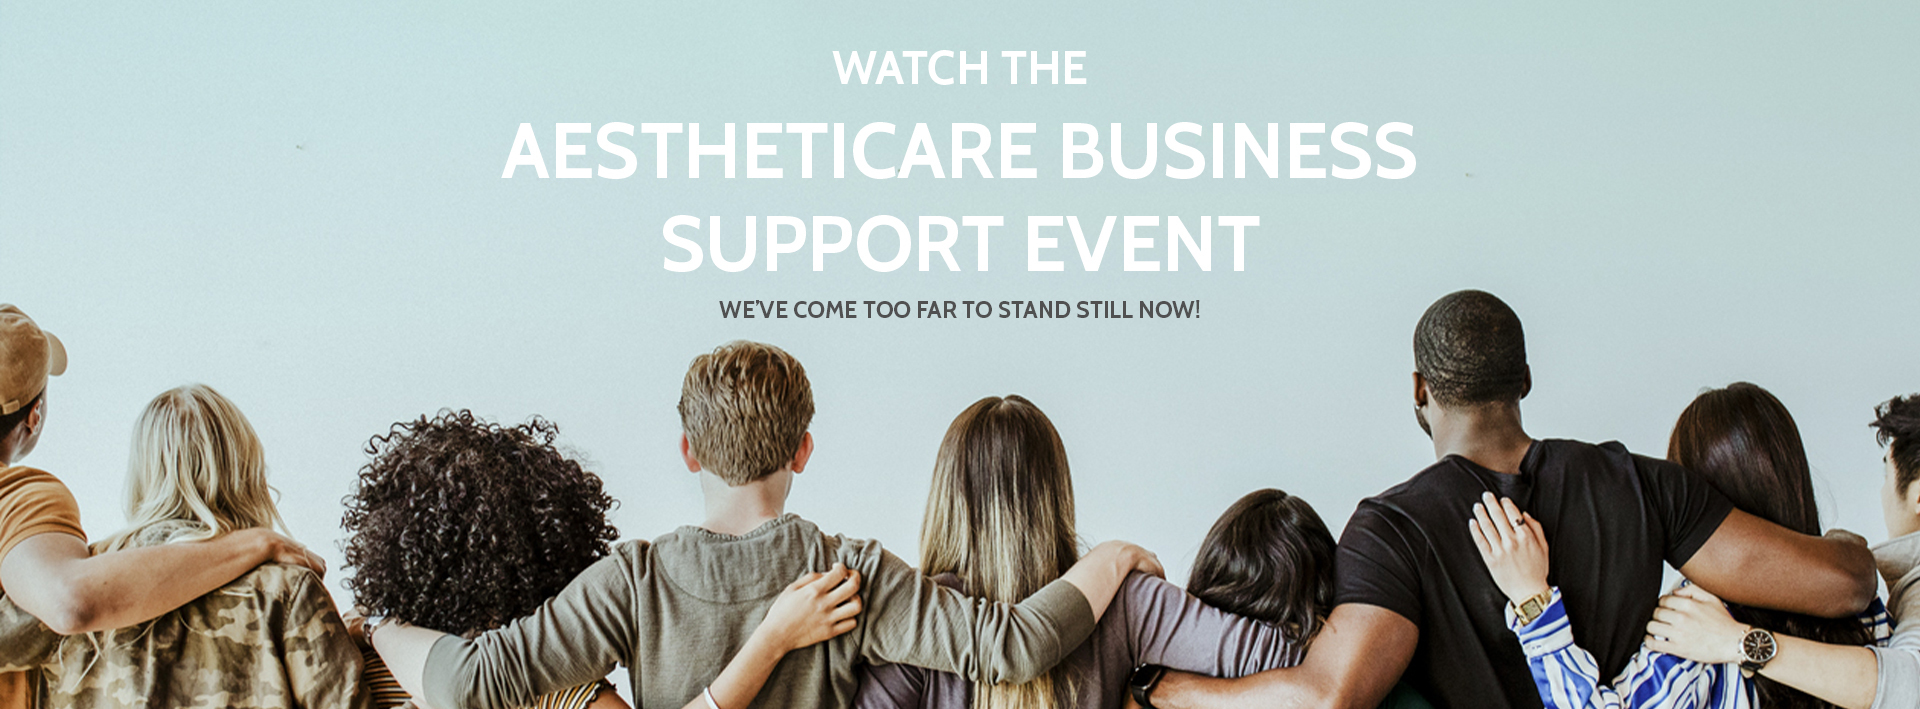 AesthetiCare Business Support Event